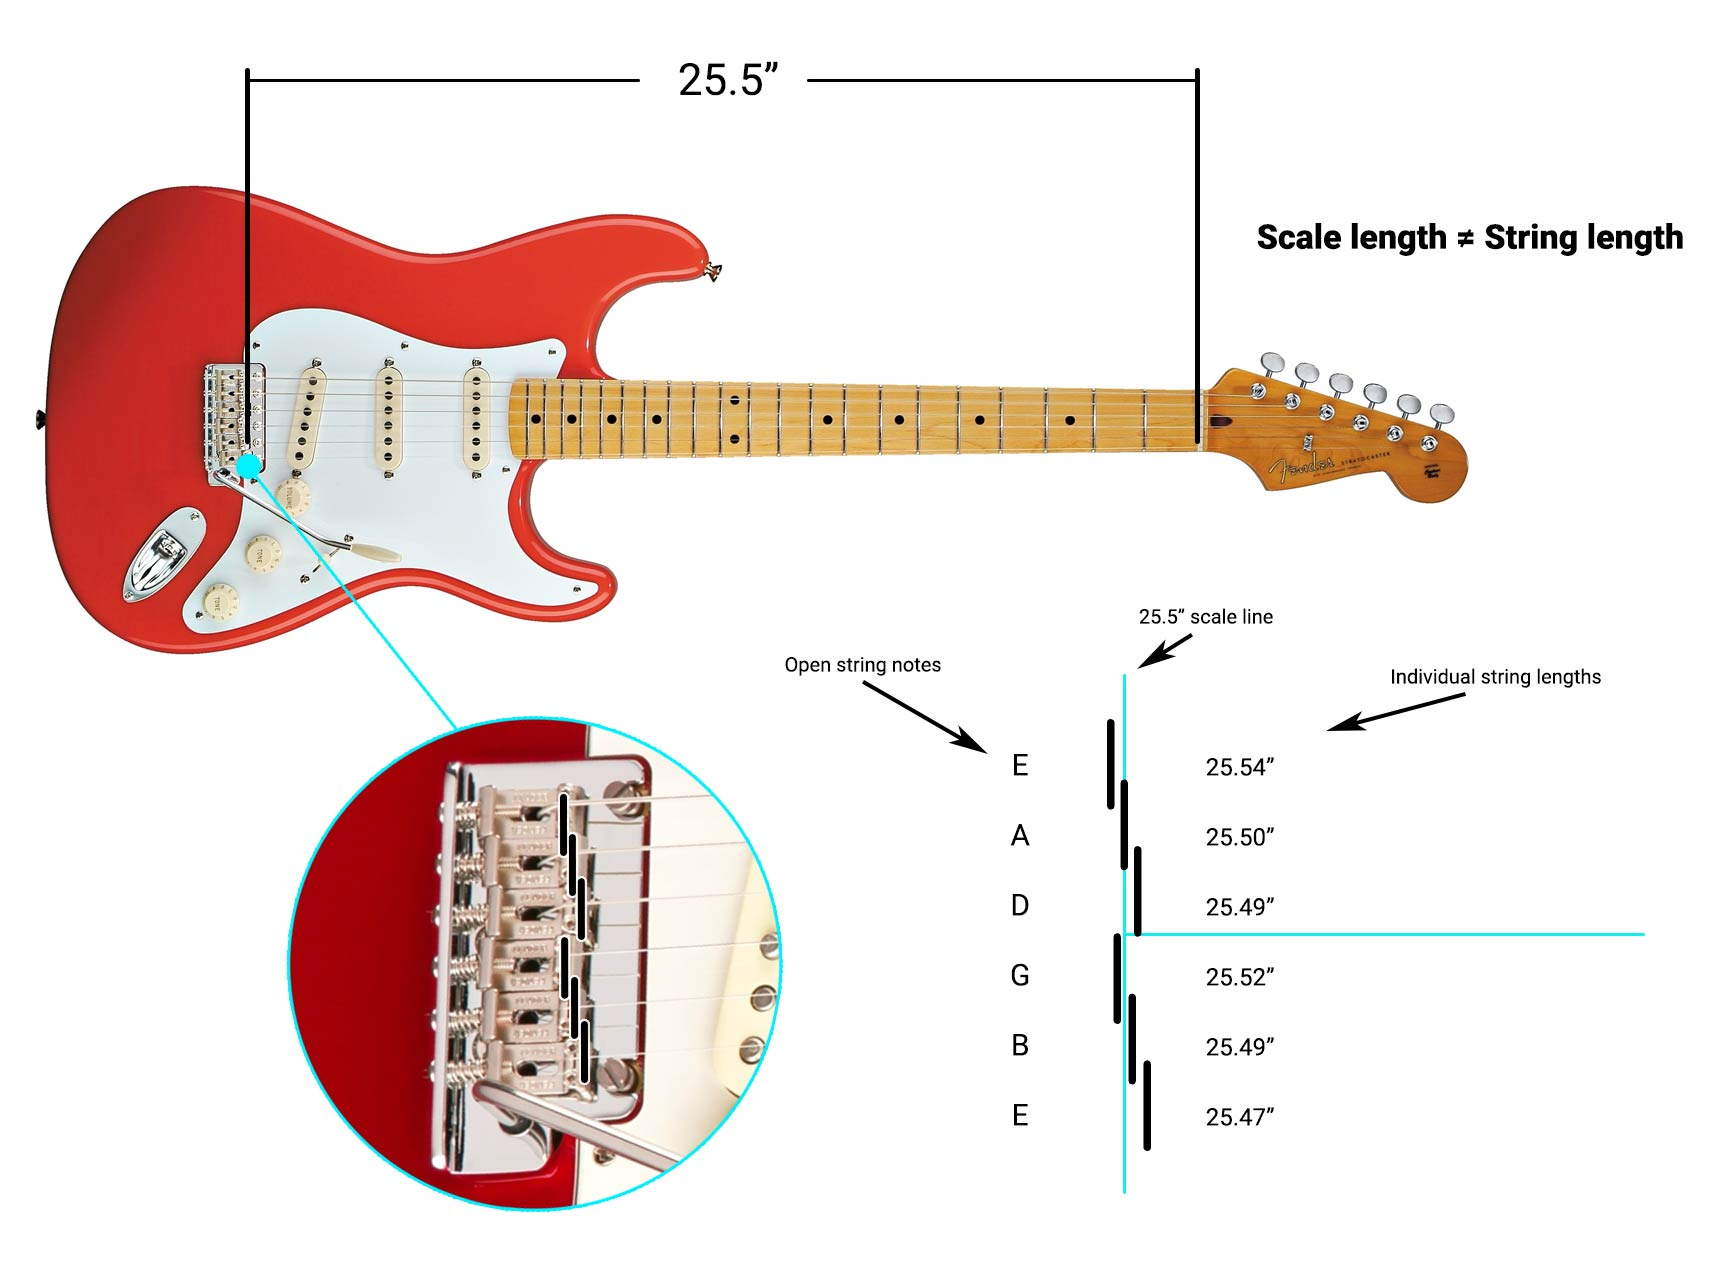 Intonation diagram showing that scale length does not necessarily equal string length.